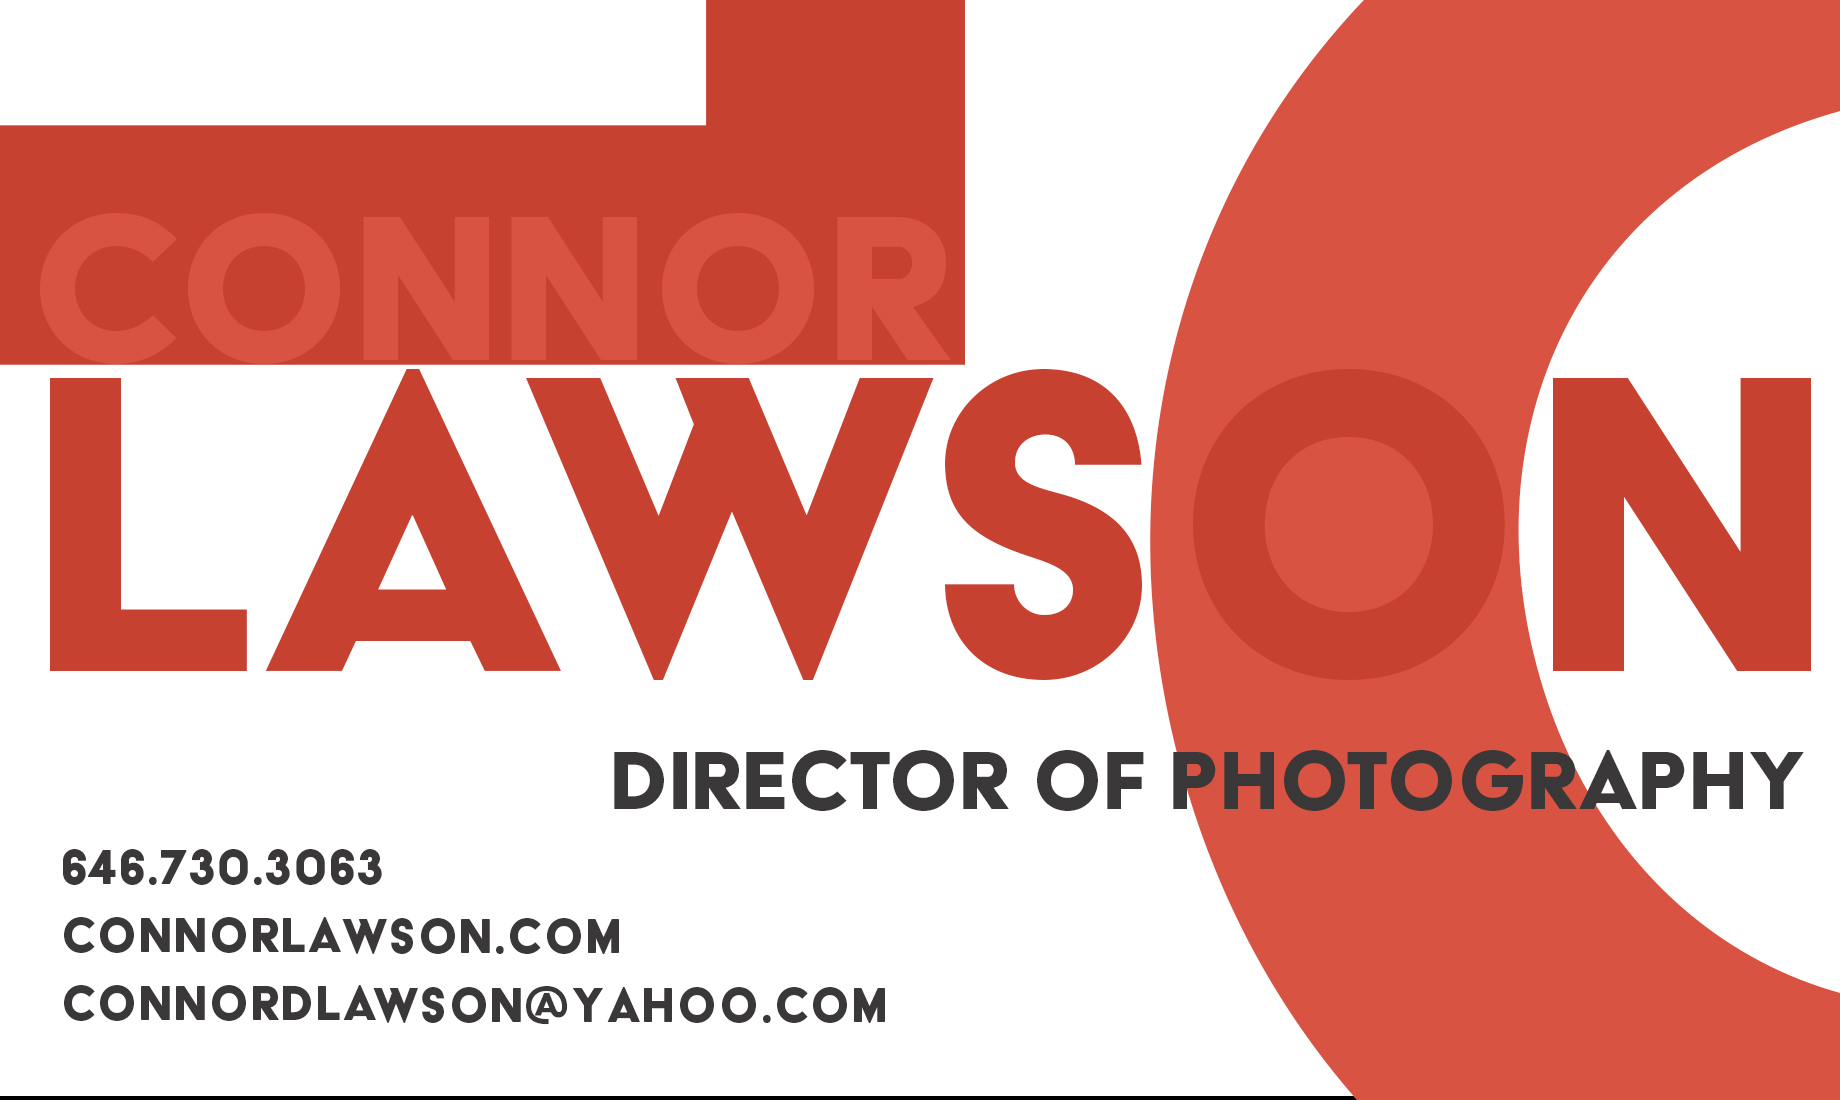 Director of Photography - connordlawson@yahoo.com